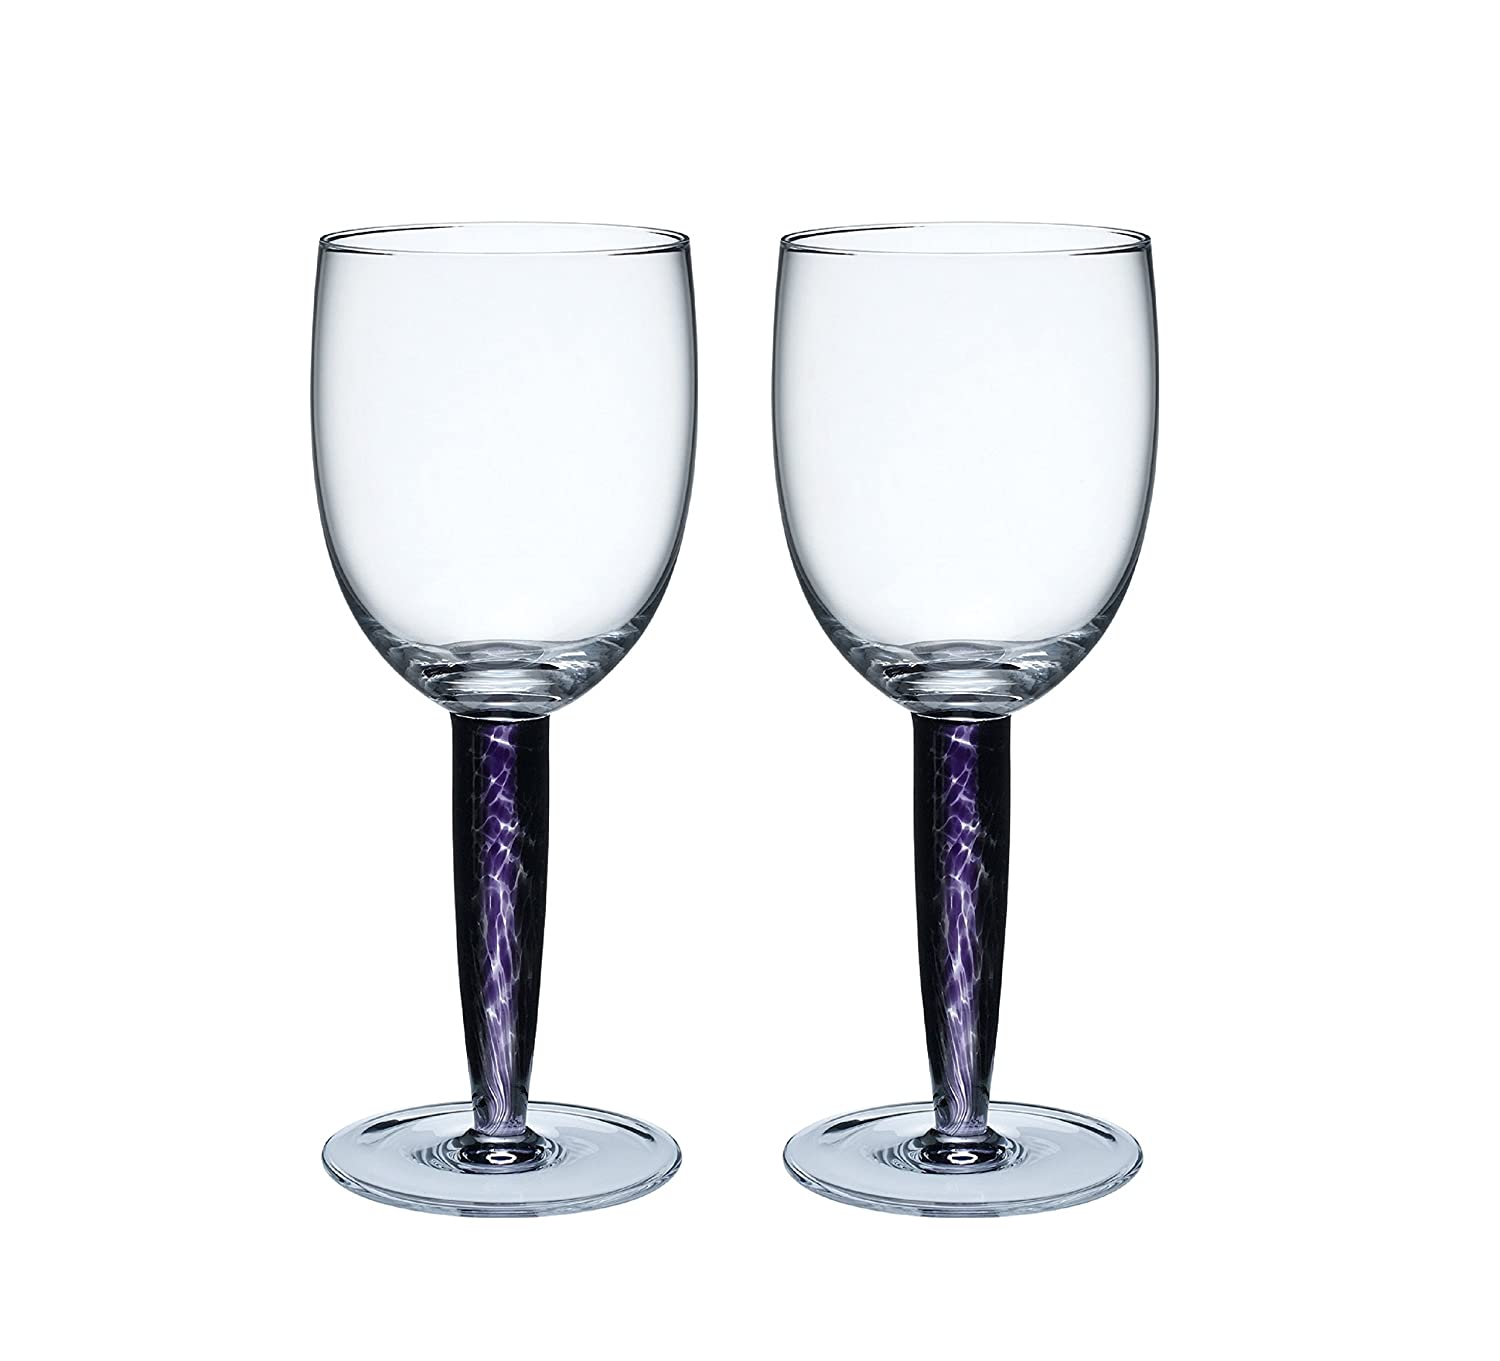 Denby Amethyst Red Wine Glass, 0.3L - Pack of 2 0.3L - Pack of 2 ATH-804/2